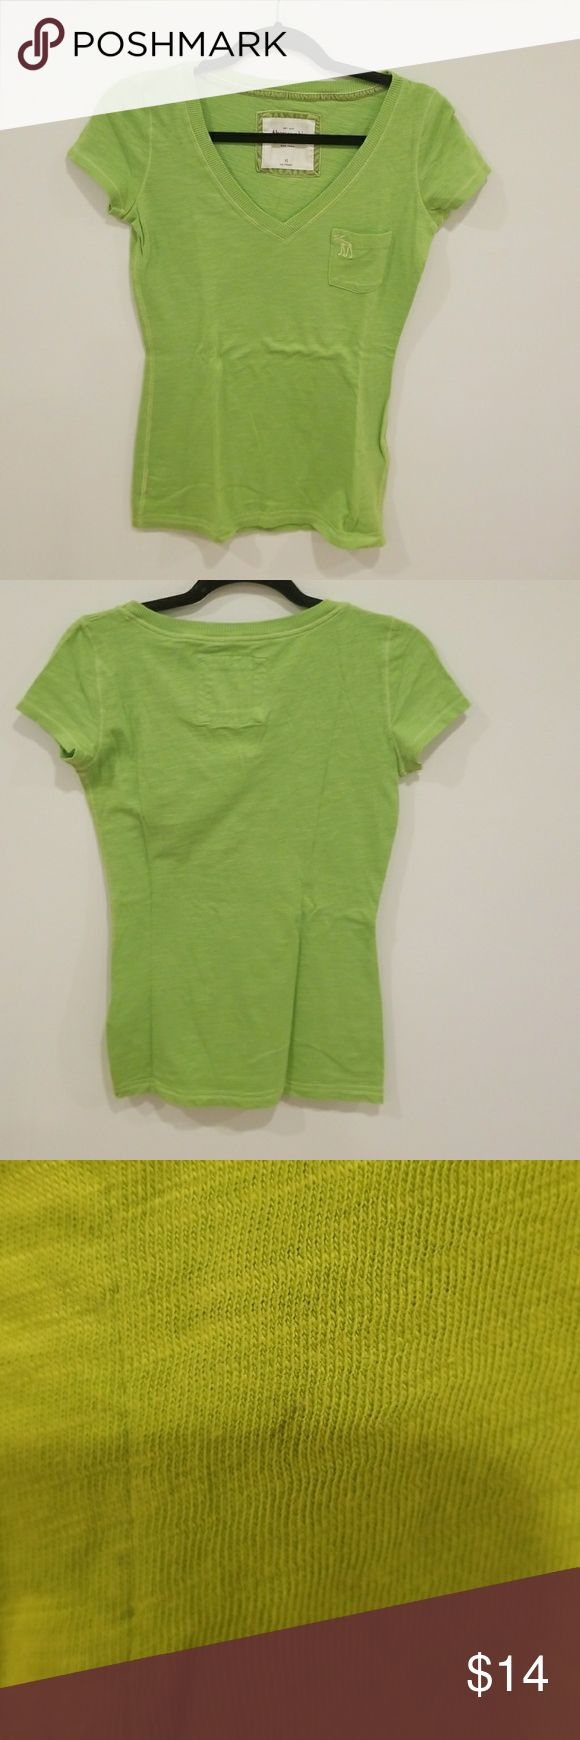 Abercrombie and Fitch Green V-Neck T-Shirt Abercrombie and Fitch Green V-Neck T-Shirt. A slight mark on the top back as seen in the third picture. Gently used. Abercrombie & Fitch Tops Tees - Short Sleeve